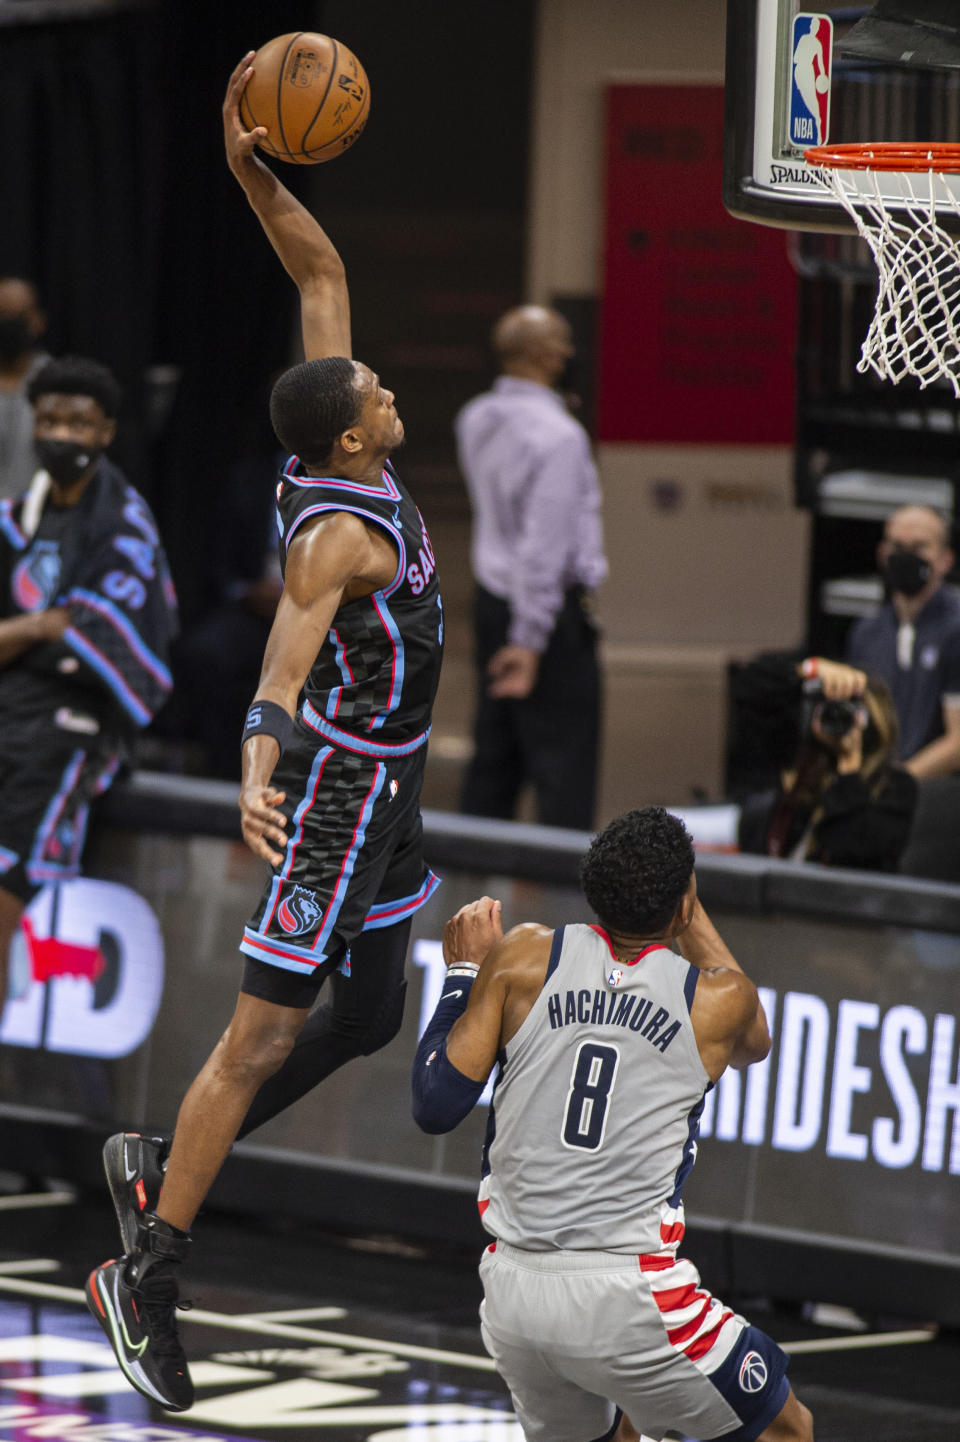 Sacramento Kings guard De'Aaron Fox (5) dunks in front of Washington Wizards forward Rui Hachimura (8) during the second quarter of an NBA basketball game in Sacramento, Calif., Wednesday, April 14, 2021. (AP Photo/Hector Amezcua)